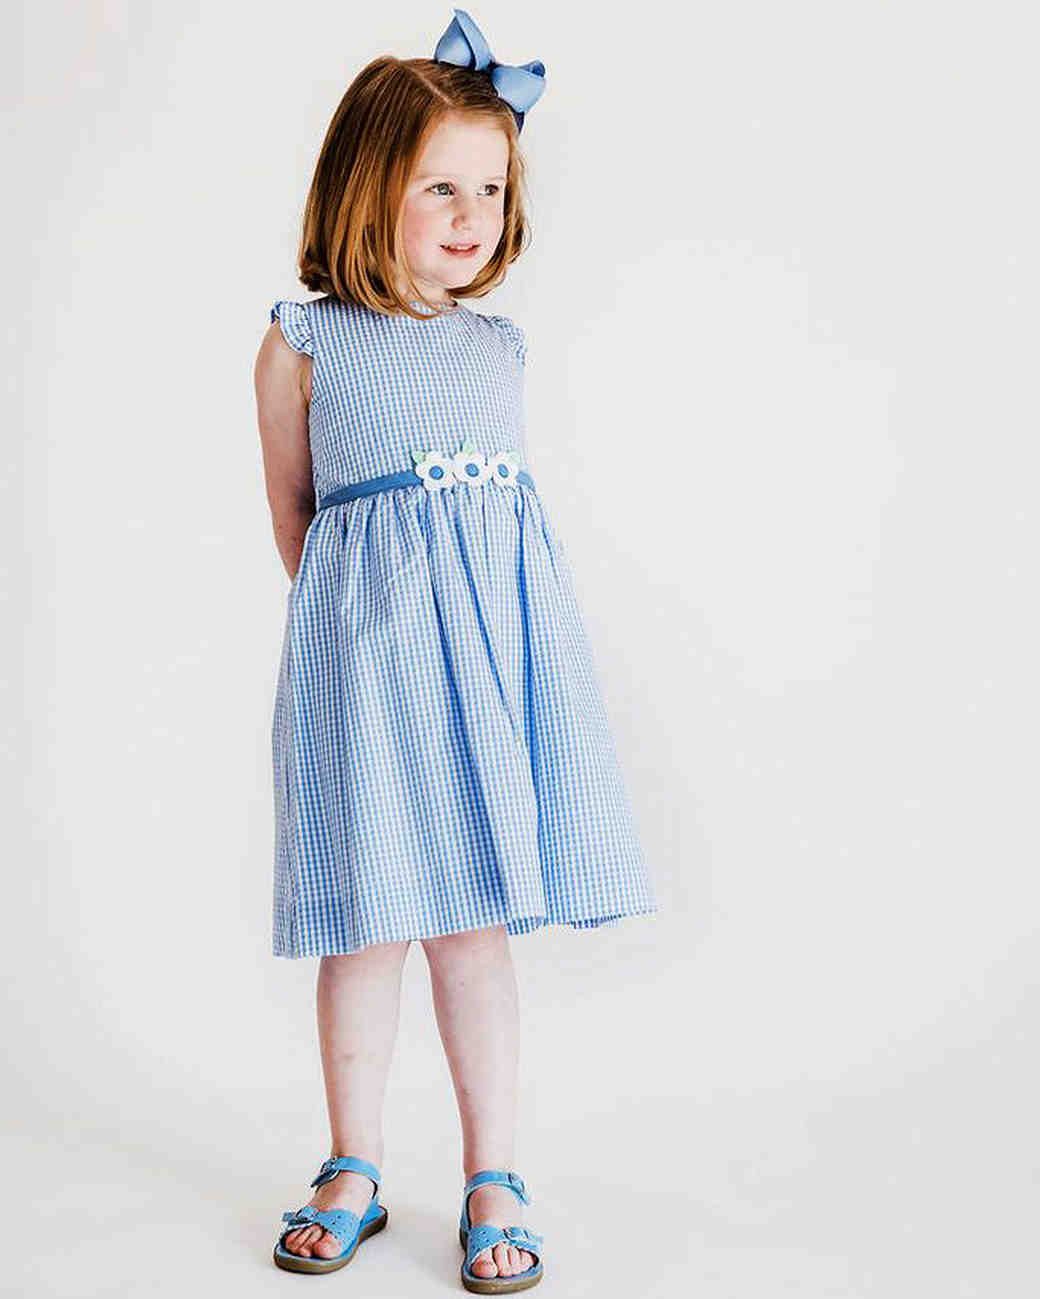 summer flower girl outfit blue seersucker dress